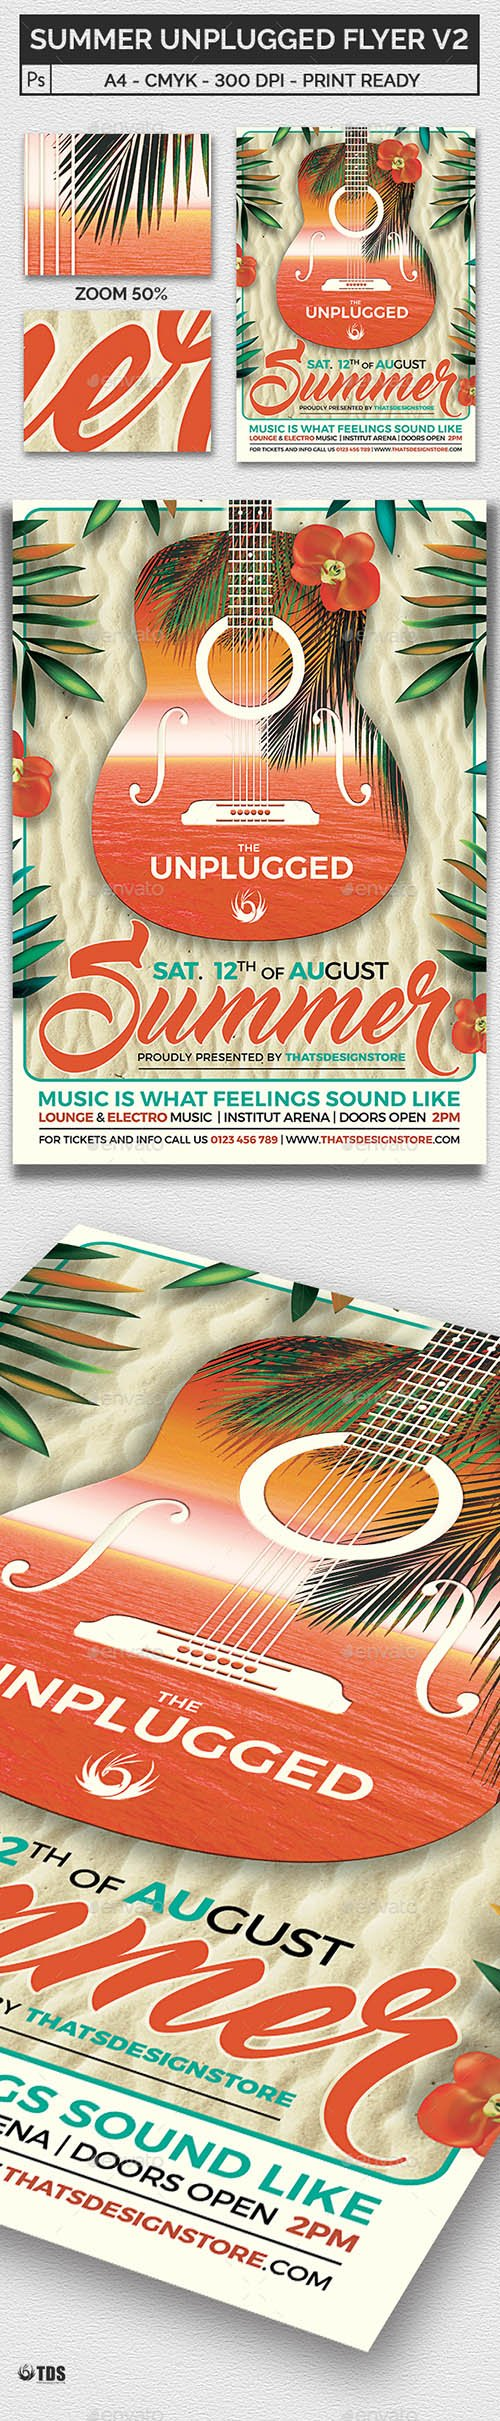 Summer Unplugged Flyer Template V2